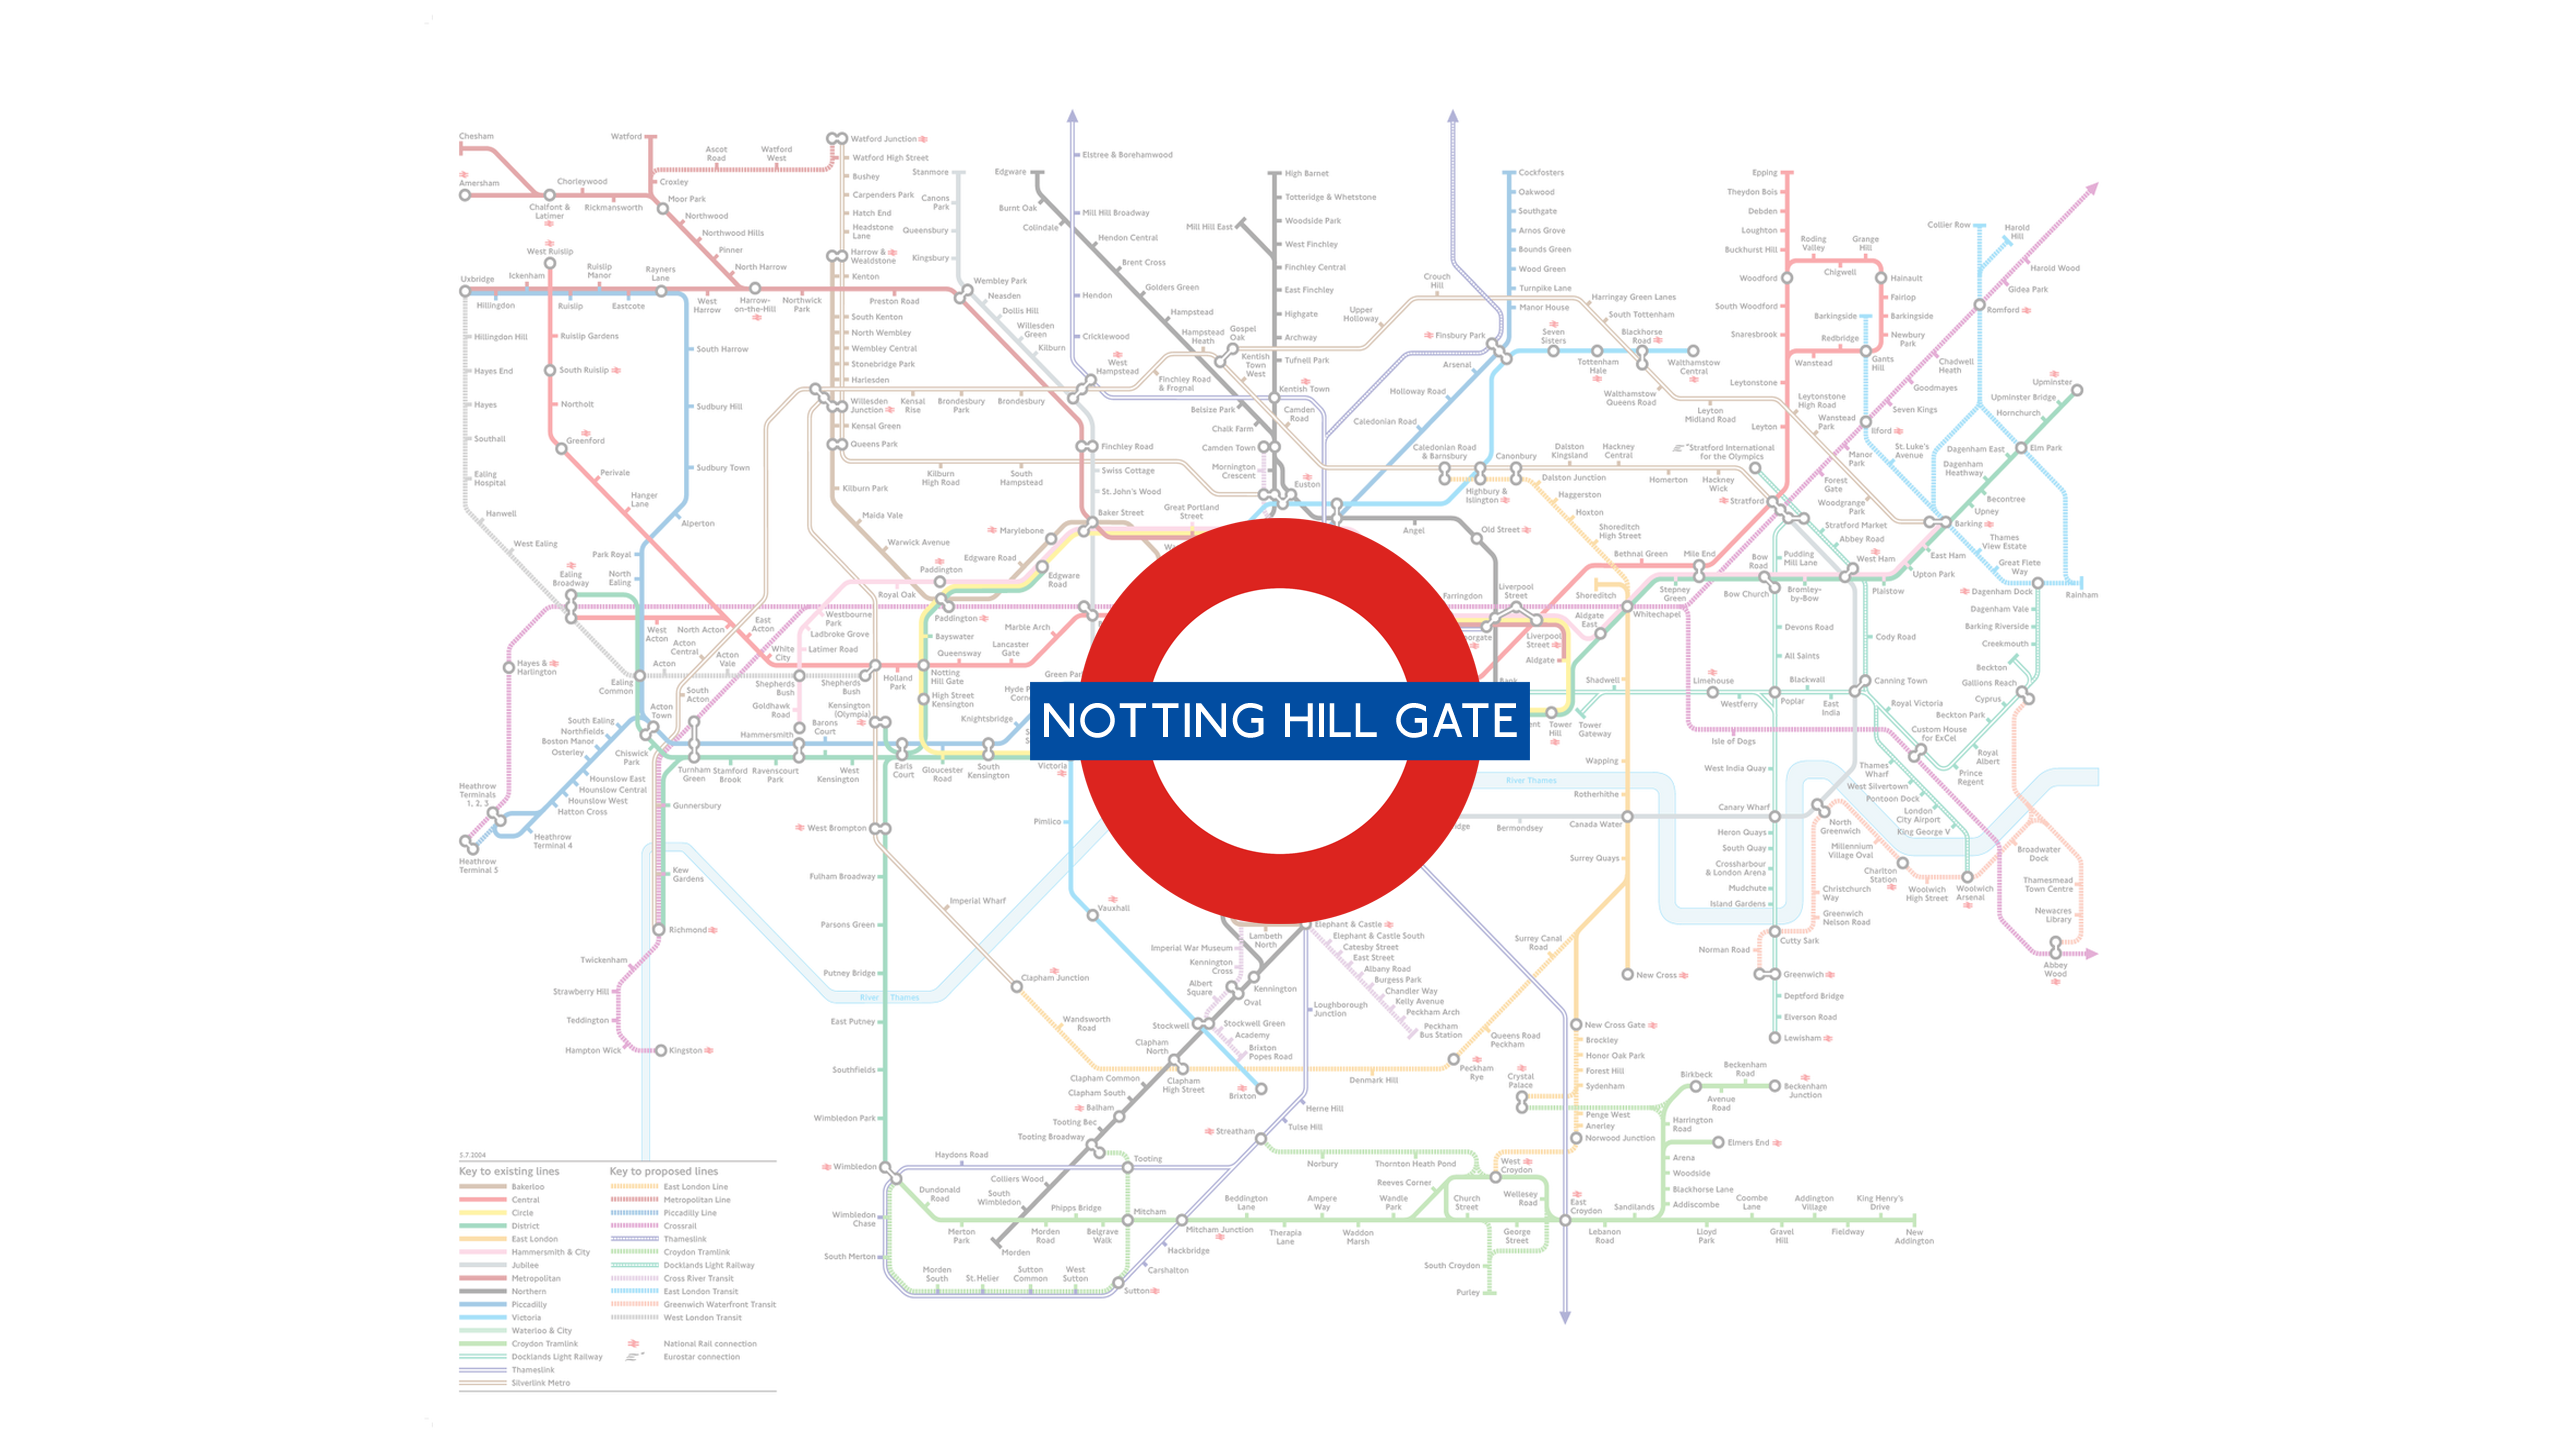 Notting Hill Gate (Map)